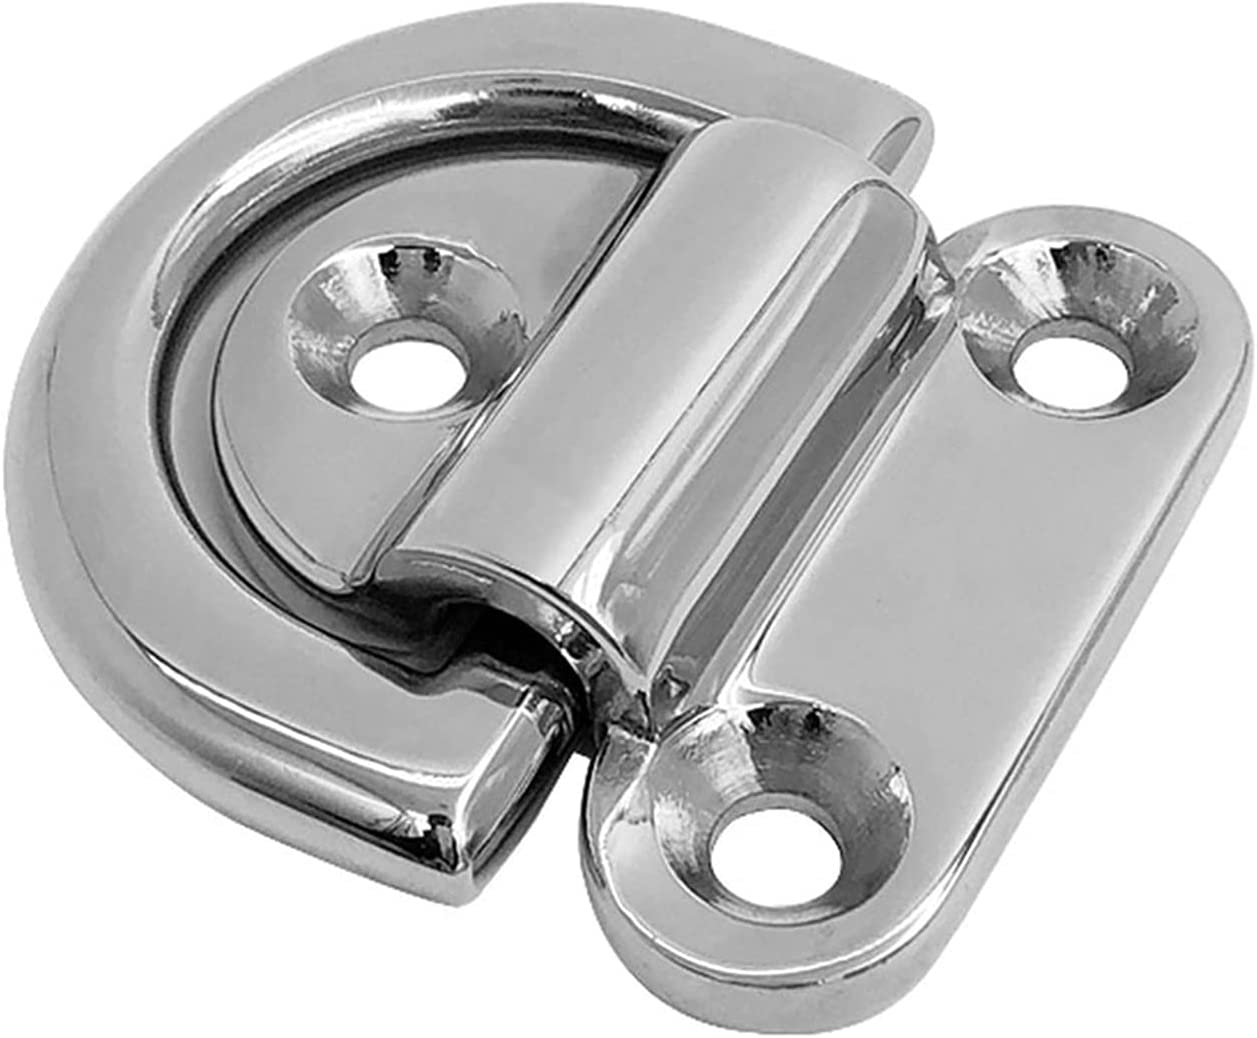 XSGZ 2pcs Stainless Steel D Ring Boat shipfree Deck Tampa Mall Marine Cleat Lashing